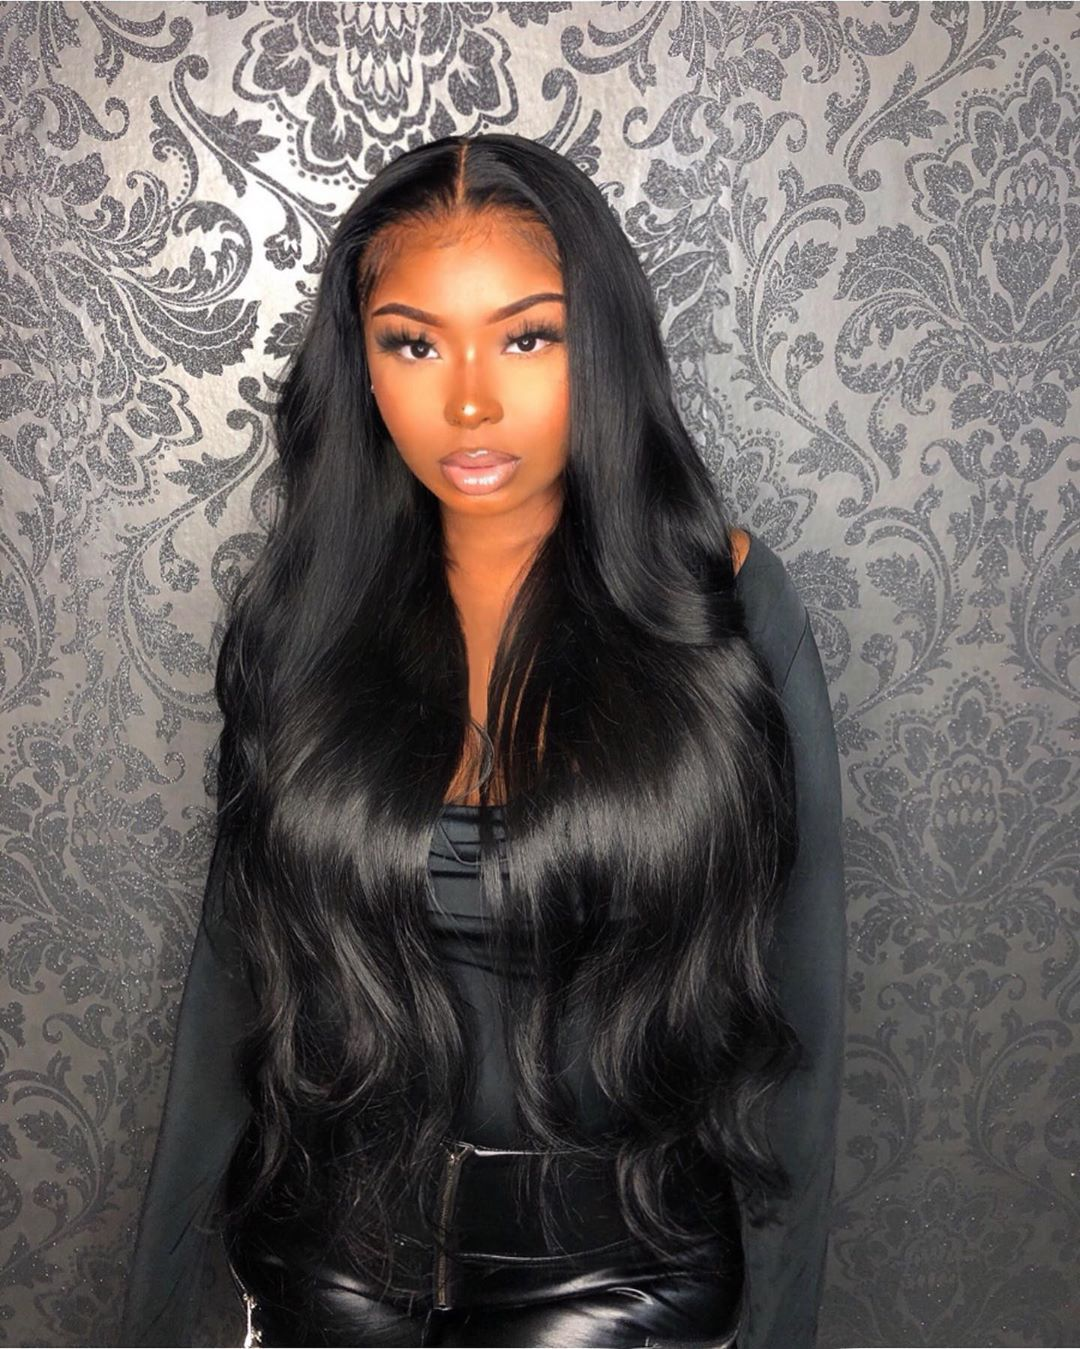 Black Wigs For Black Women Beach Waves For Short Hair With Flat Iron African American Wigs For Petite Heads Short Human Hair Bob Wigs Beach Waves Short Hair Curling Iron